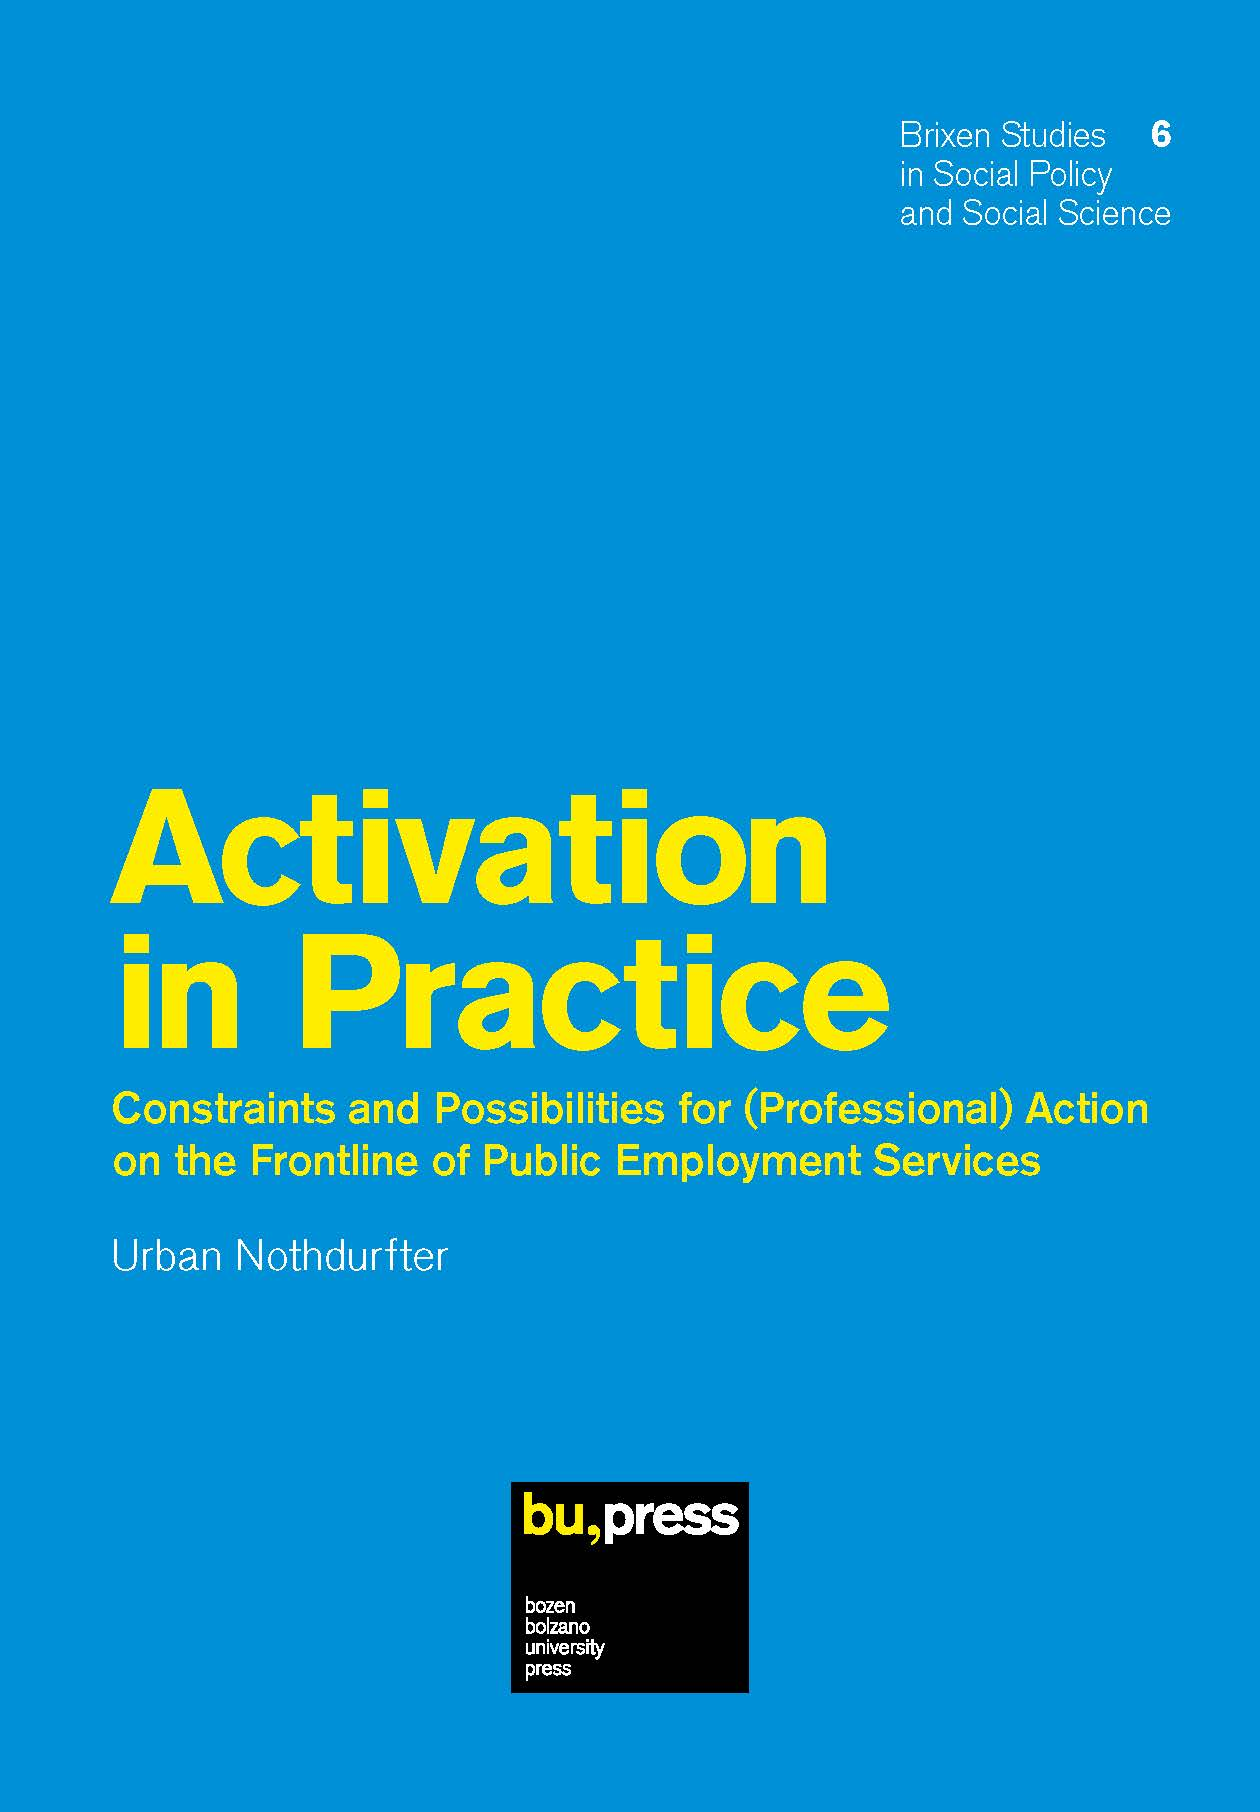 Cover of Activation in Practice - Constraints and Possibilities for (Professional) Action on the Frontline of Public Employment Services